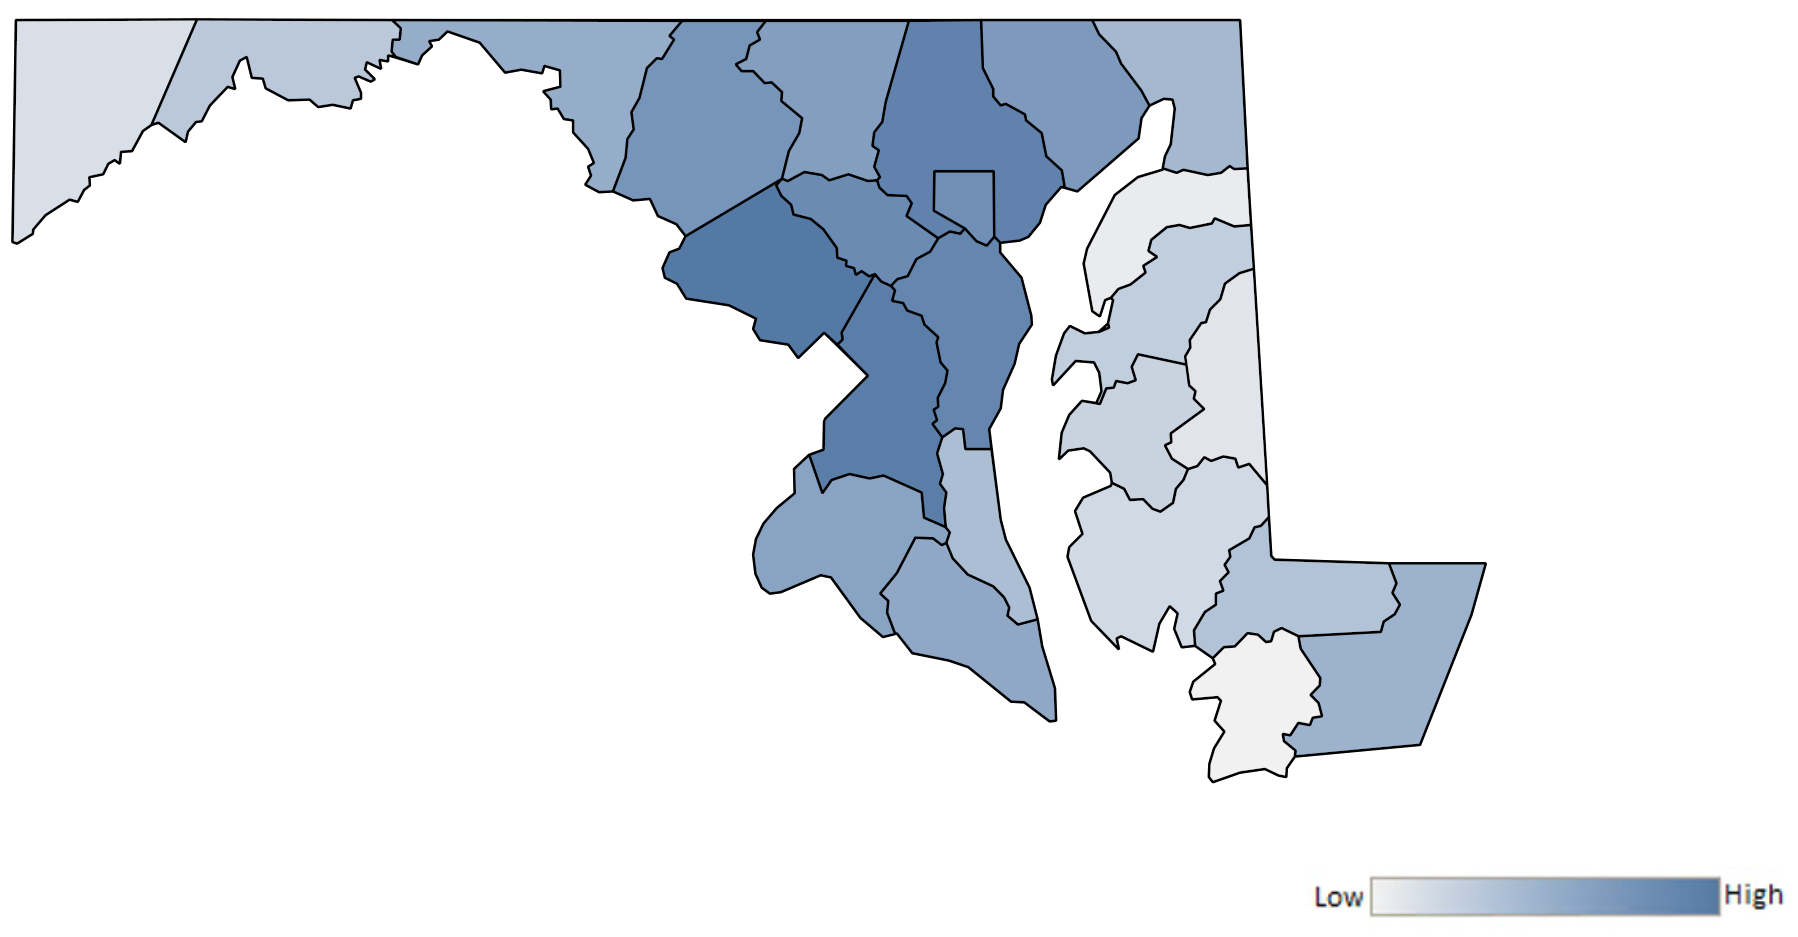 Map of Maryland counties indicating relative number of complaints from low to high. See attached CSV file for complaint data by jurisdiction.